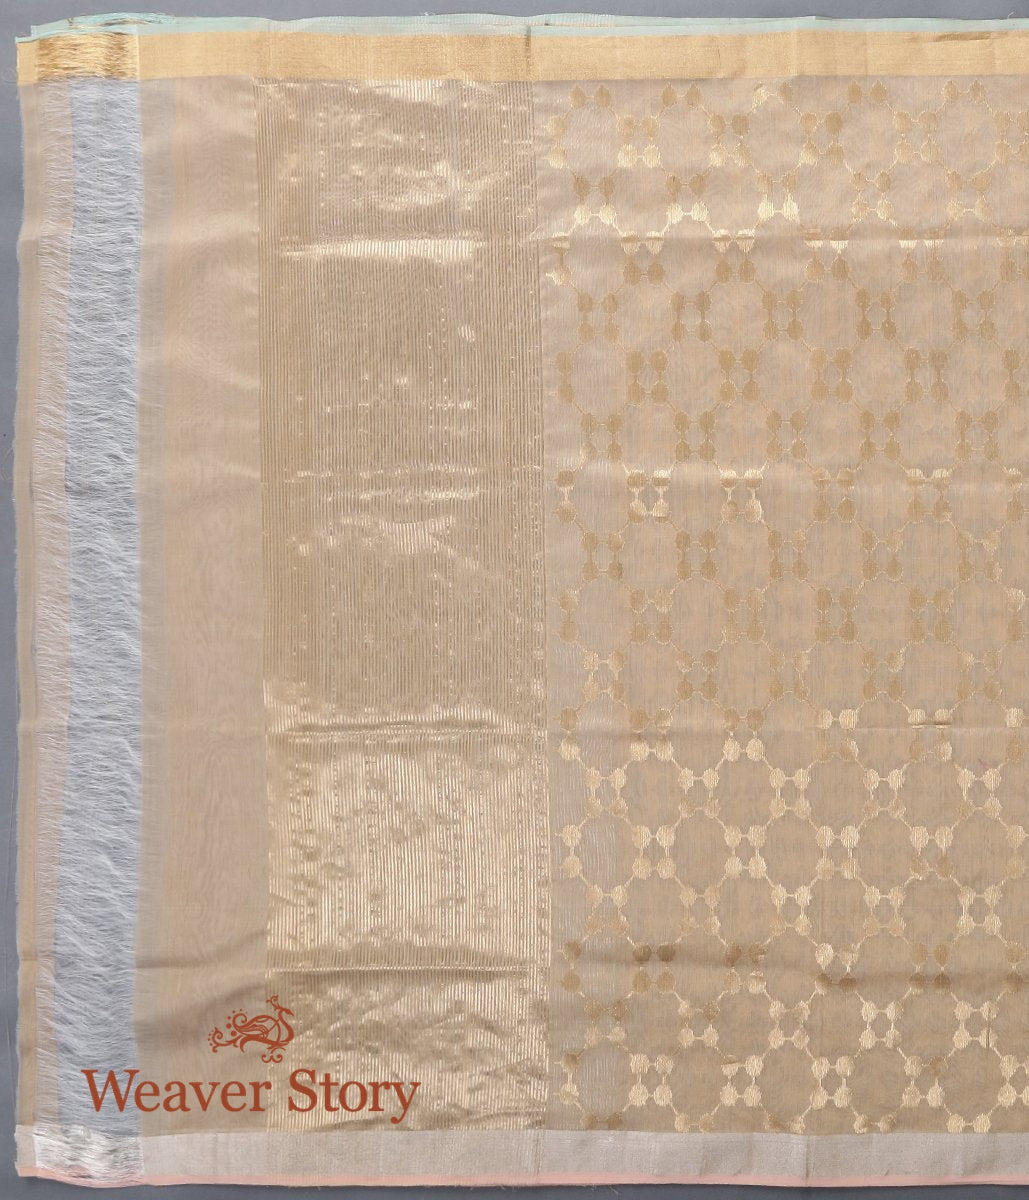 Handwoven Beige Chanderi Cotton Silk Dupatta with Gold Zari